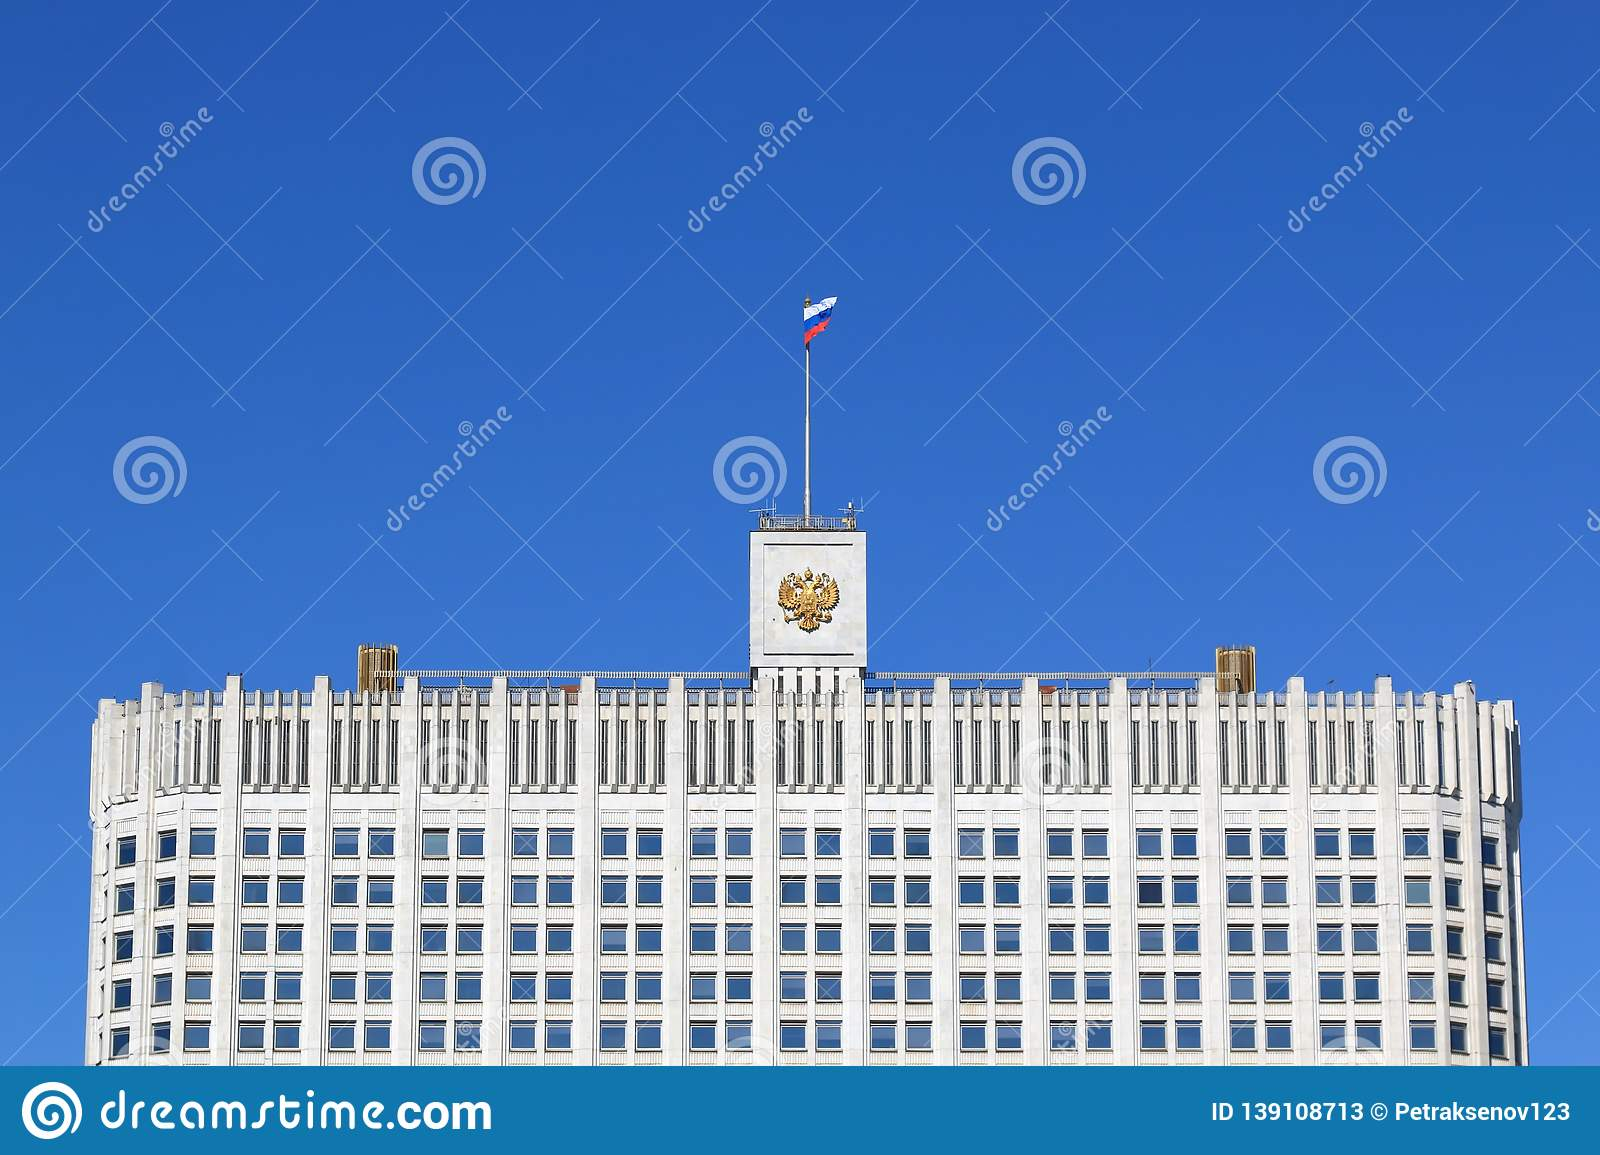 The House of the Government of the Russian Federation upper part, the State flag of Russia and the double-headed eagle